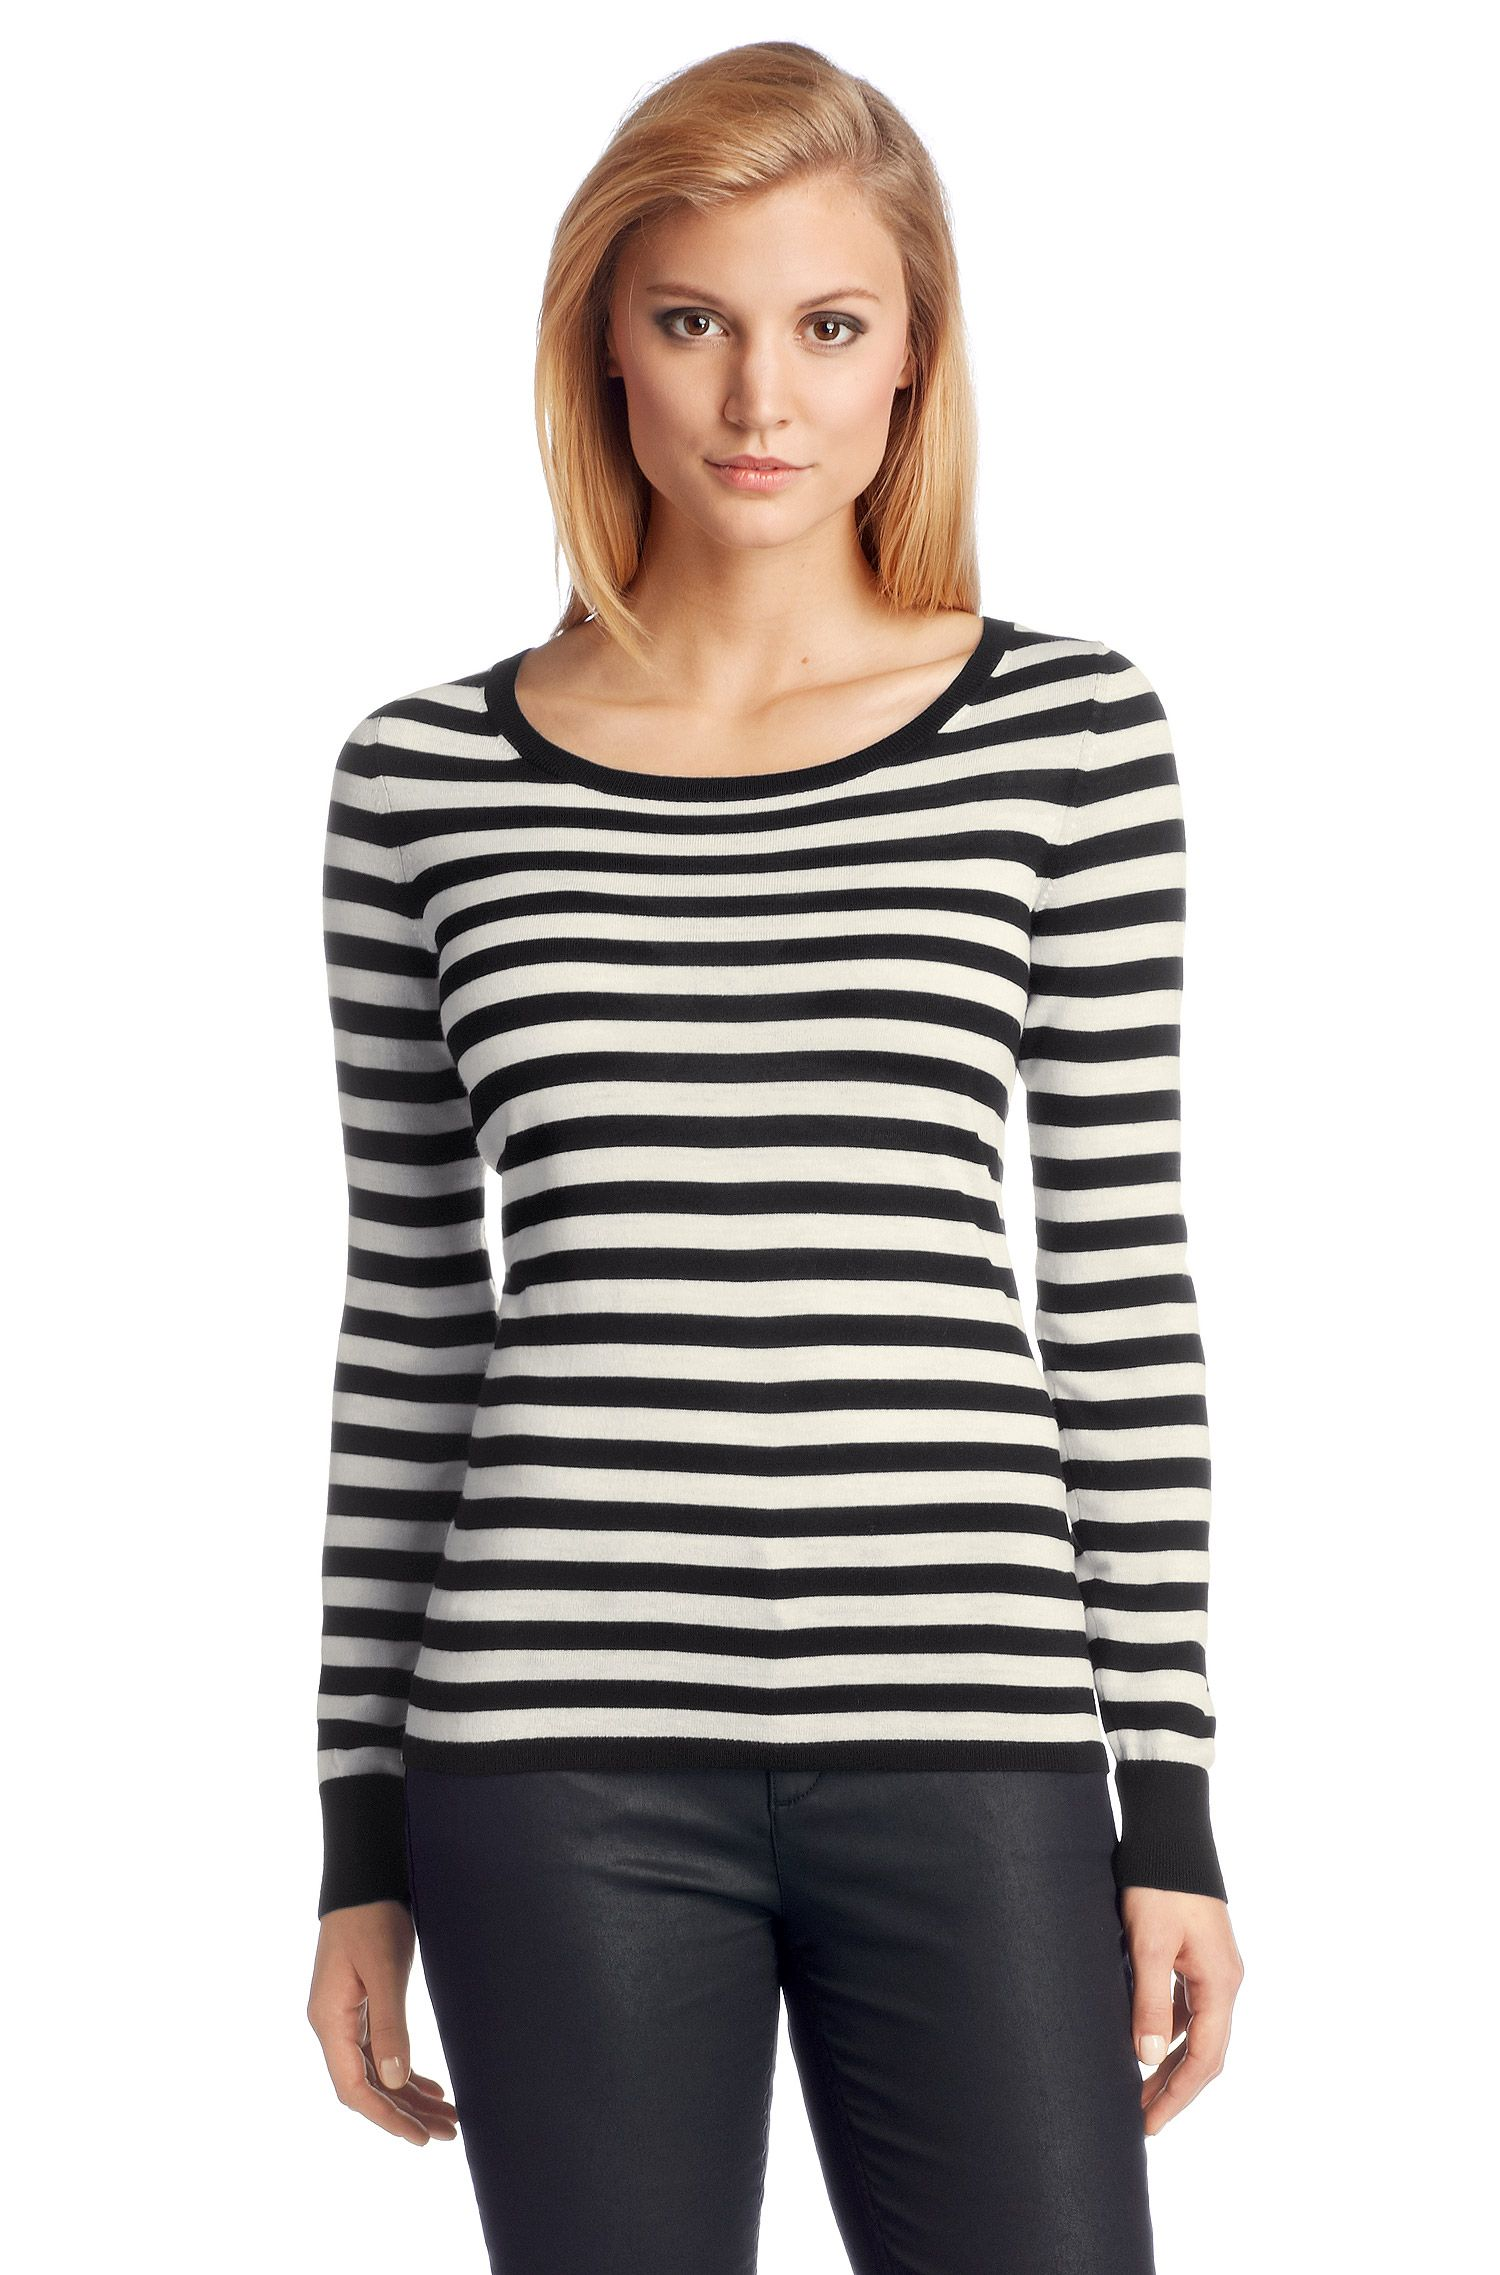 Pull-over en laine vierge, F4857